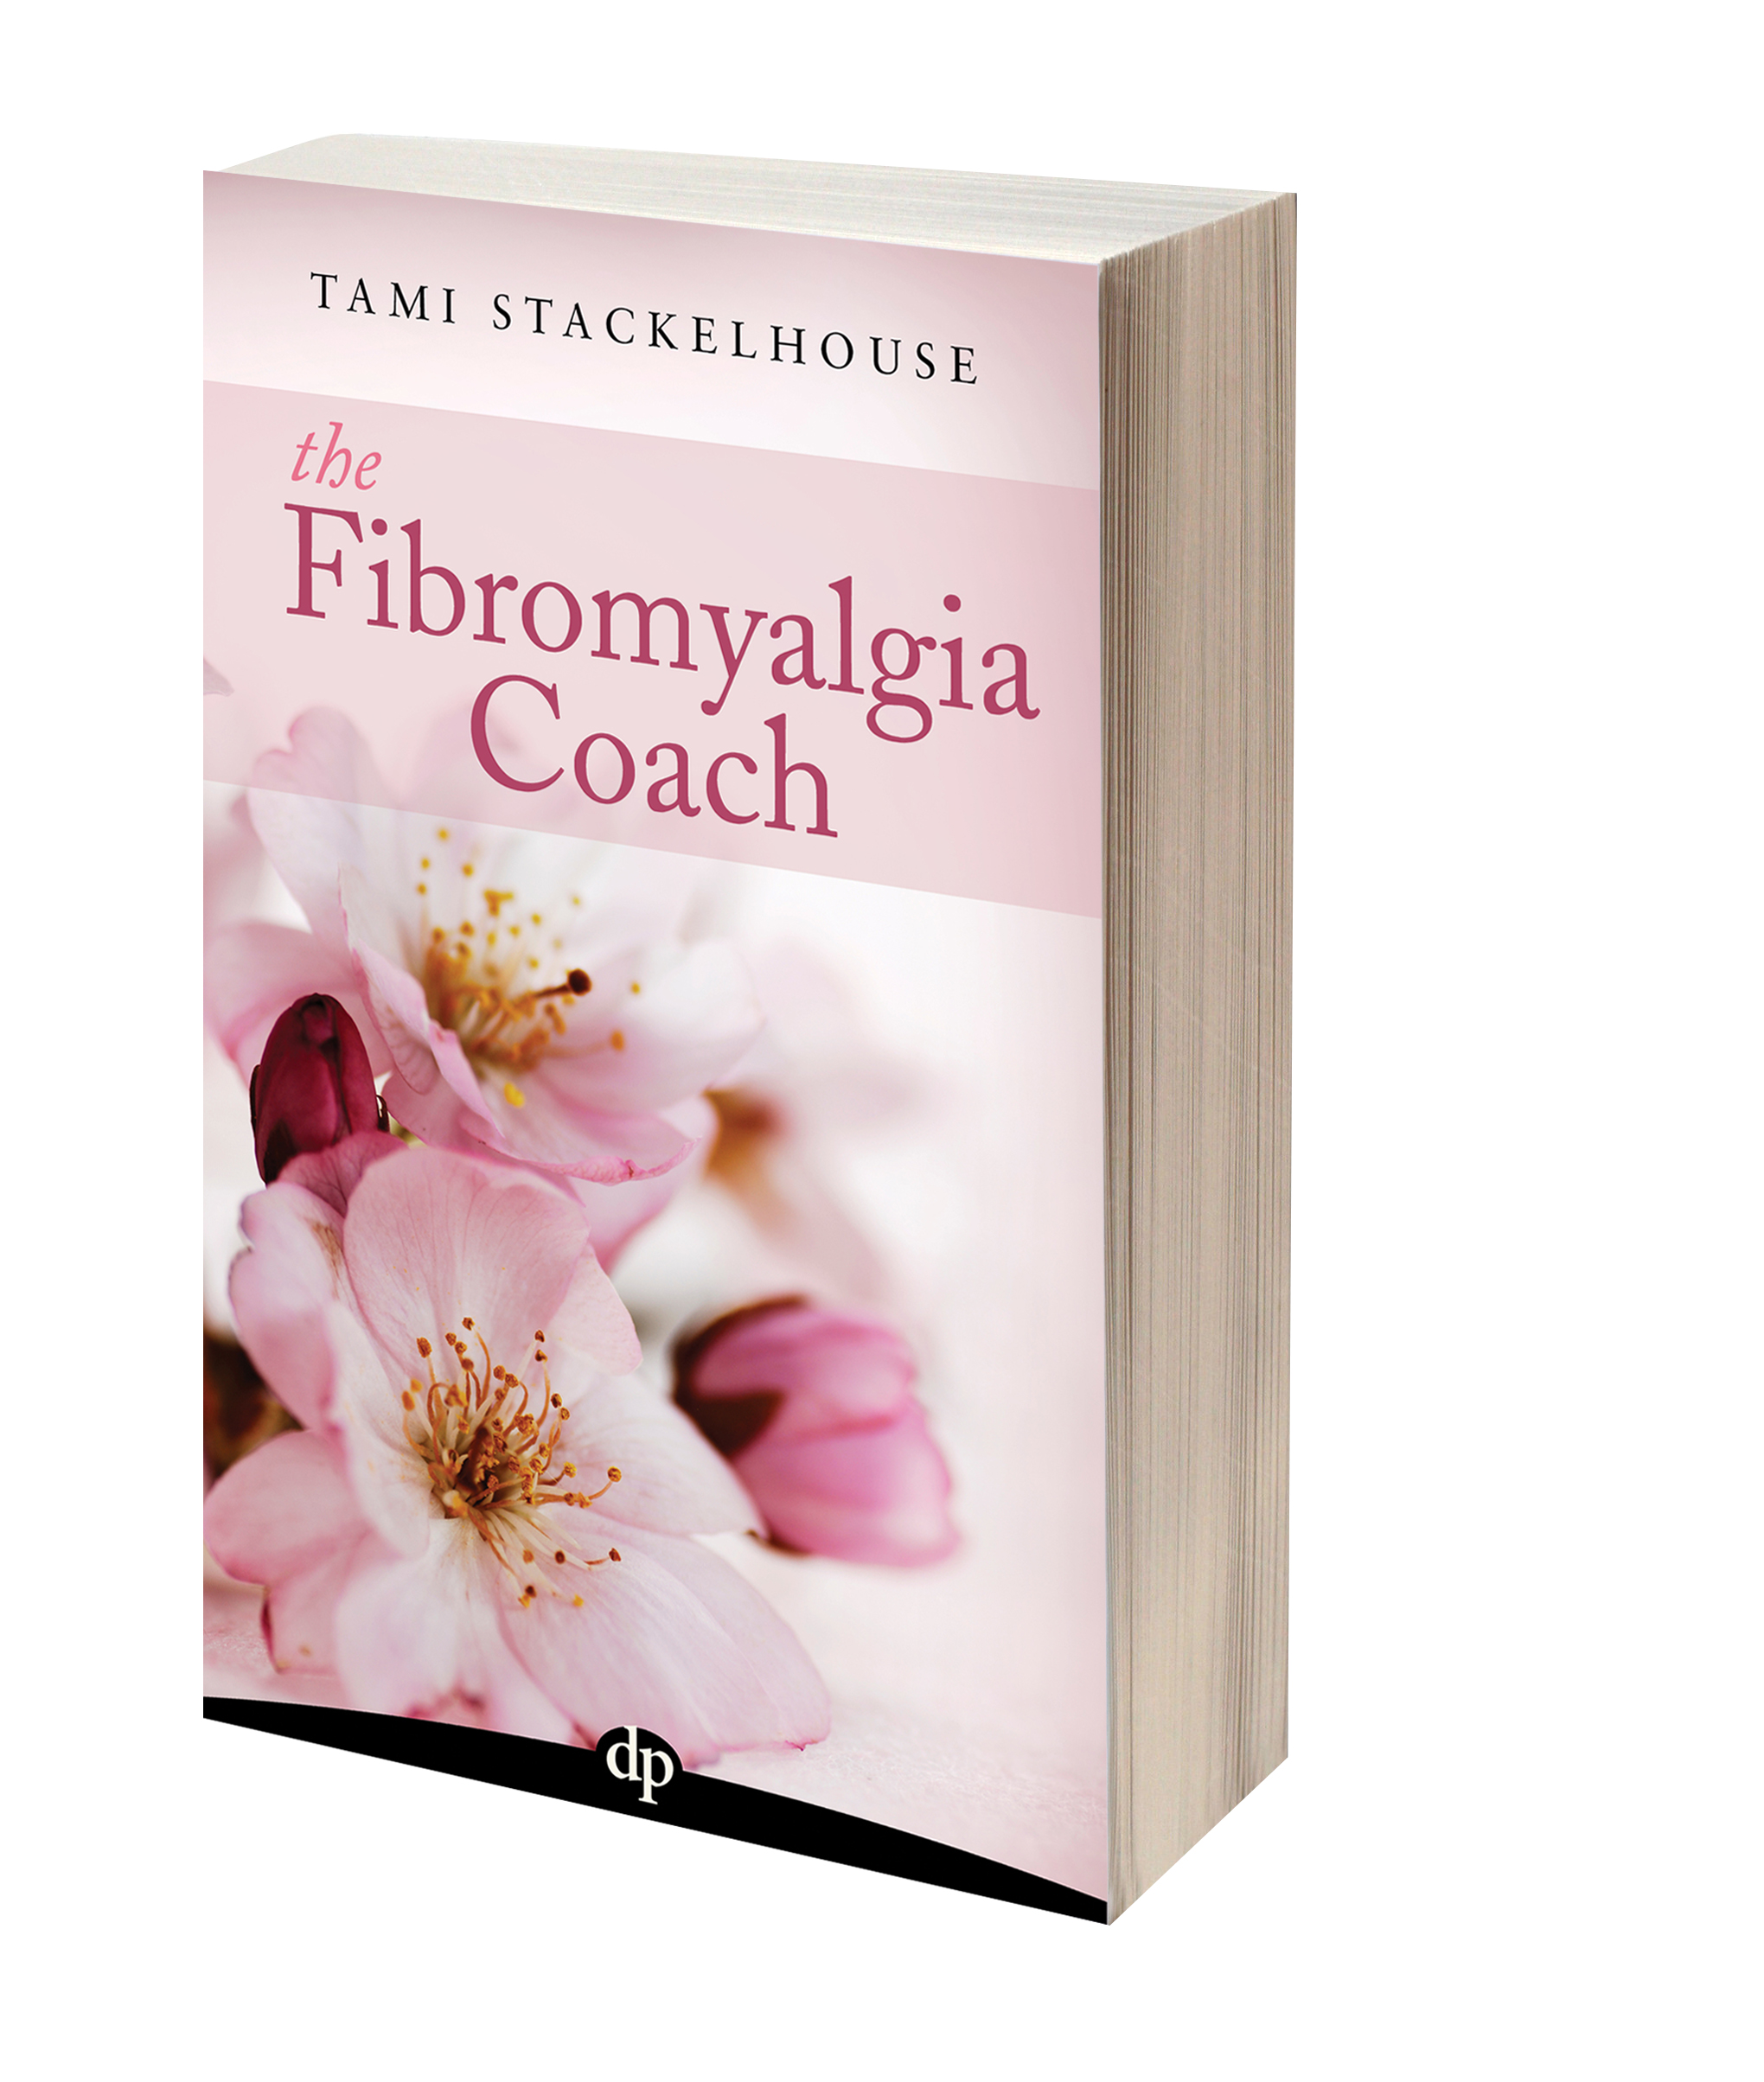 The Fibromyalgia Coach